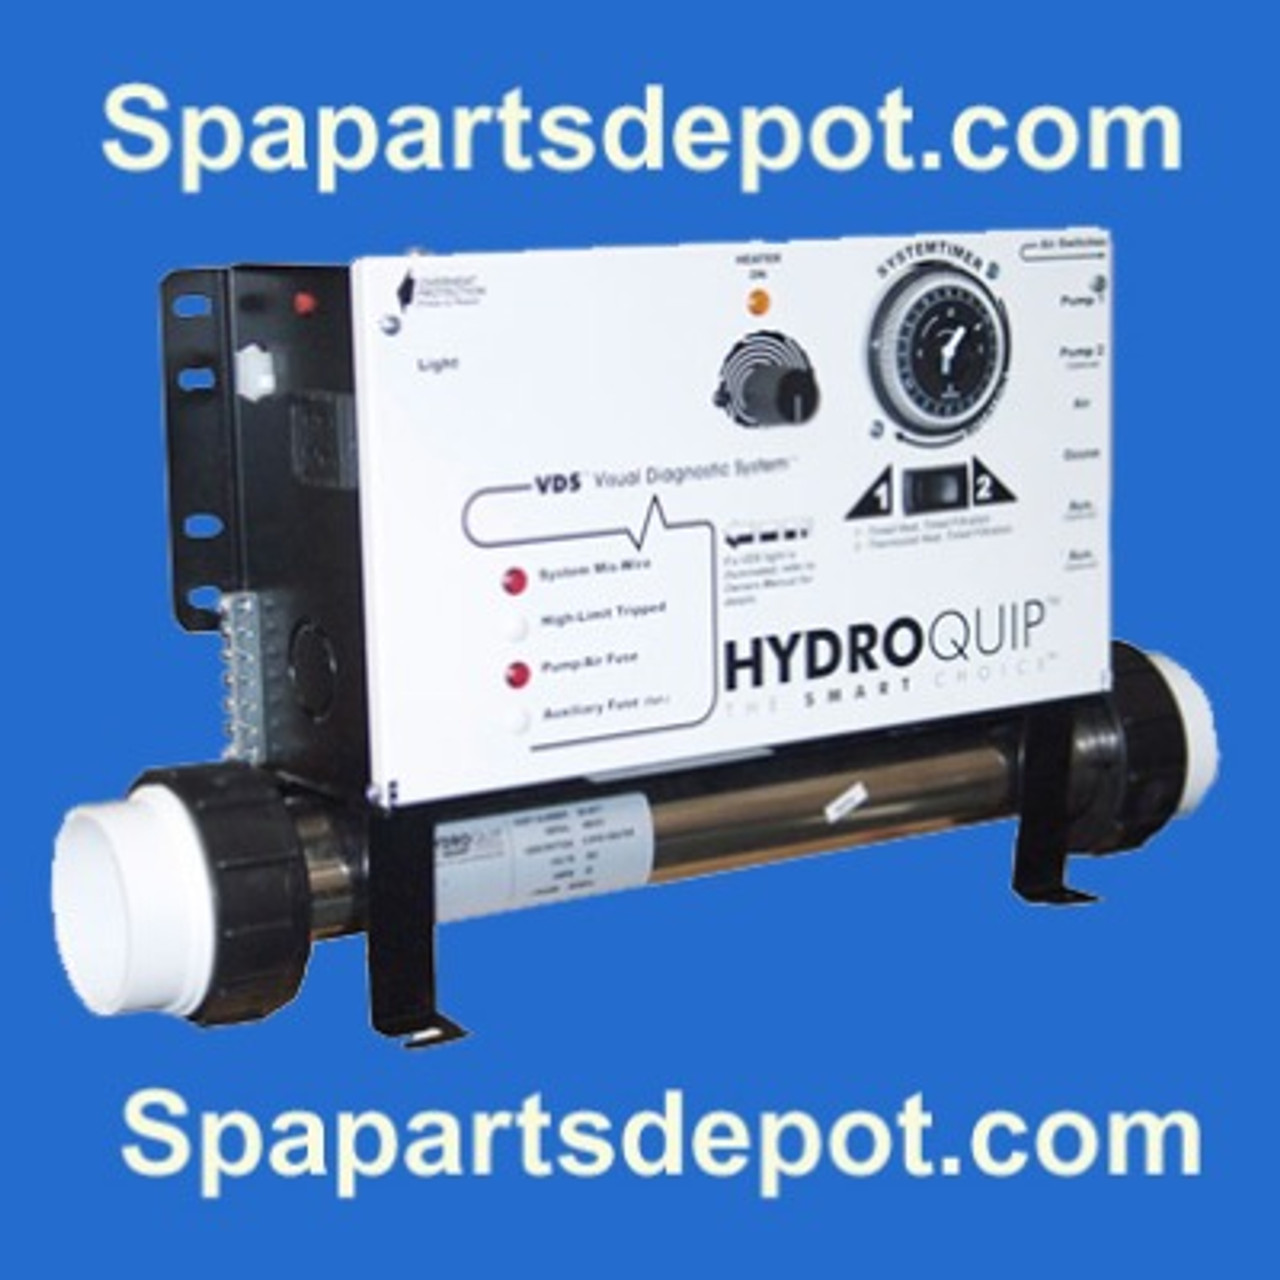 hydro quip cs6000-u1 spa control universal 120/240v with heater 3-70-0905 -  spa parts depot